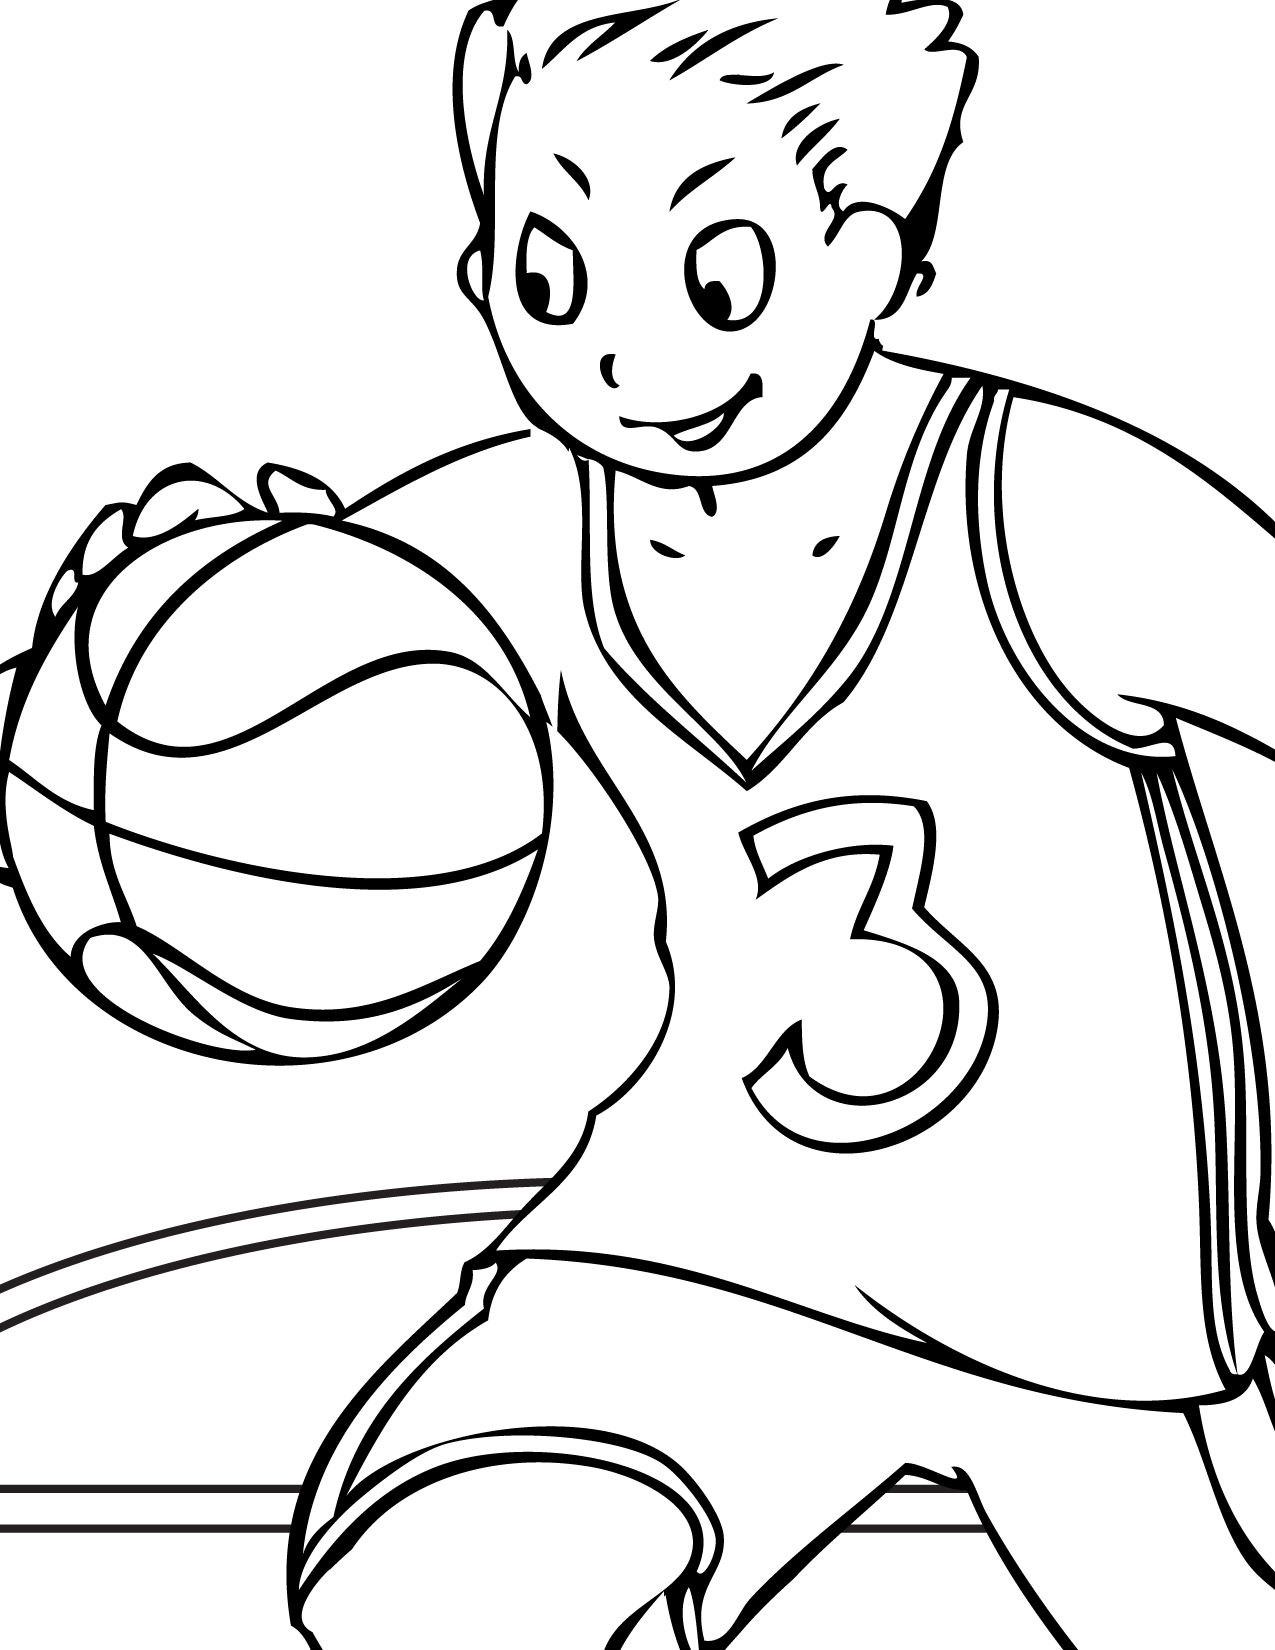 Free printable volleyball coloring pages for kids for Softball coloring pages to print